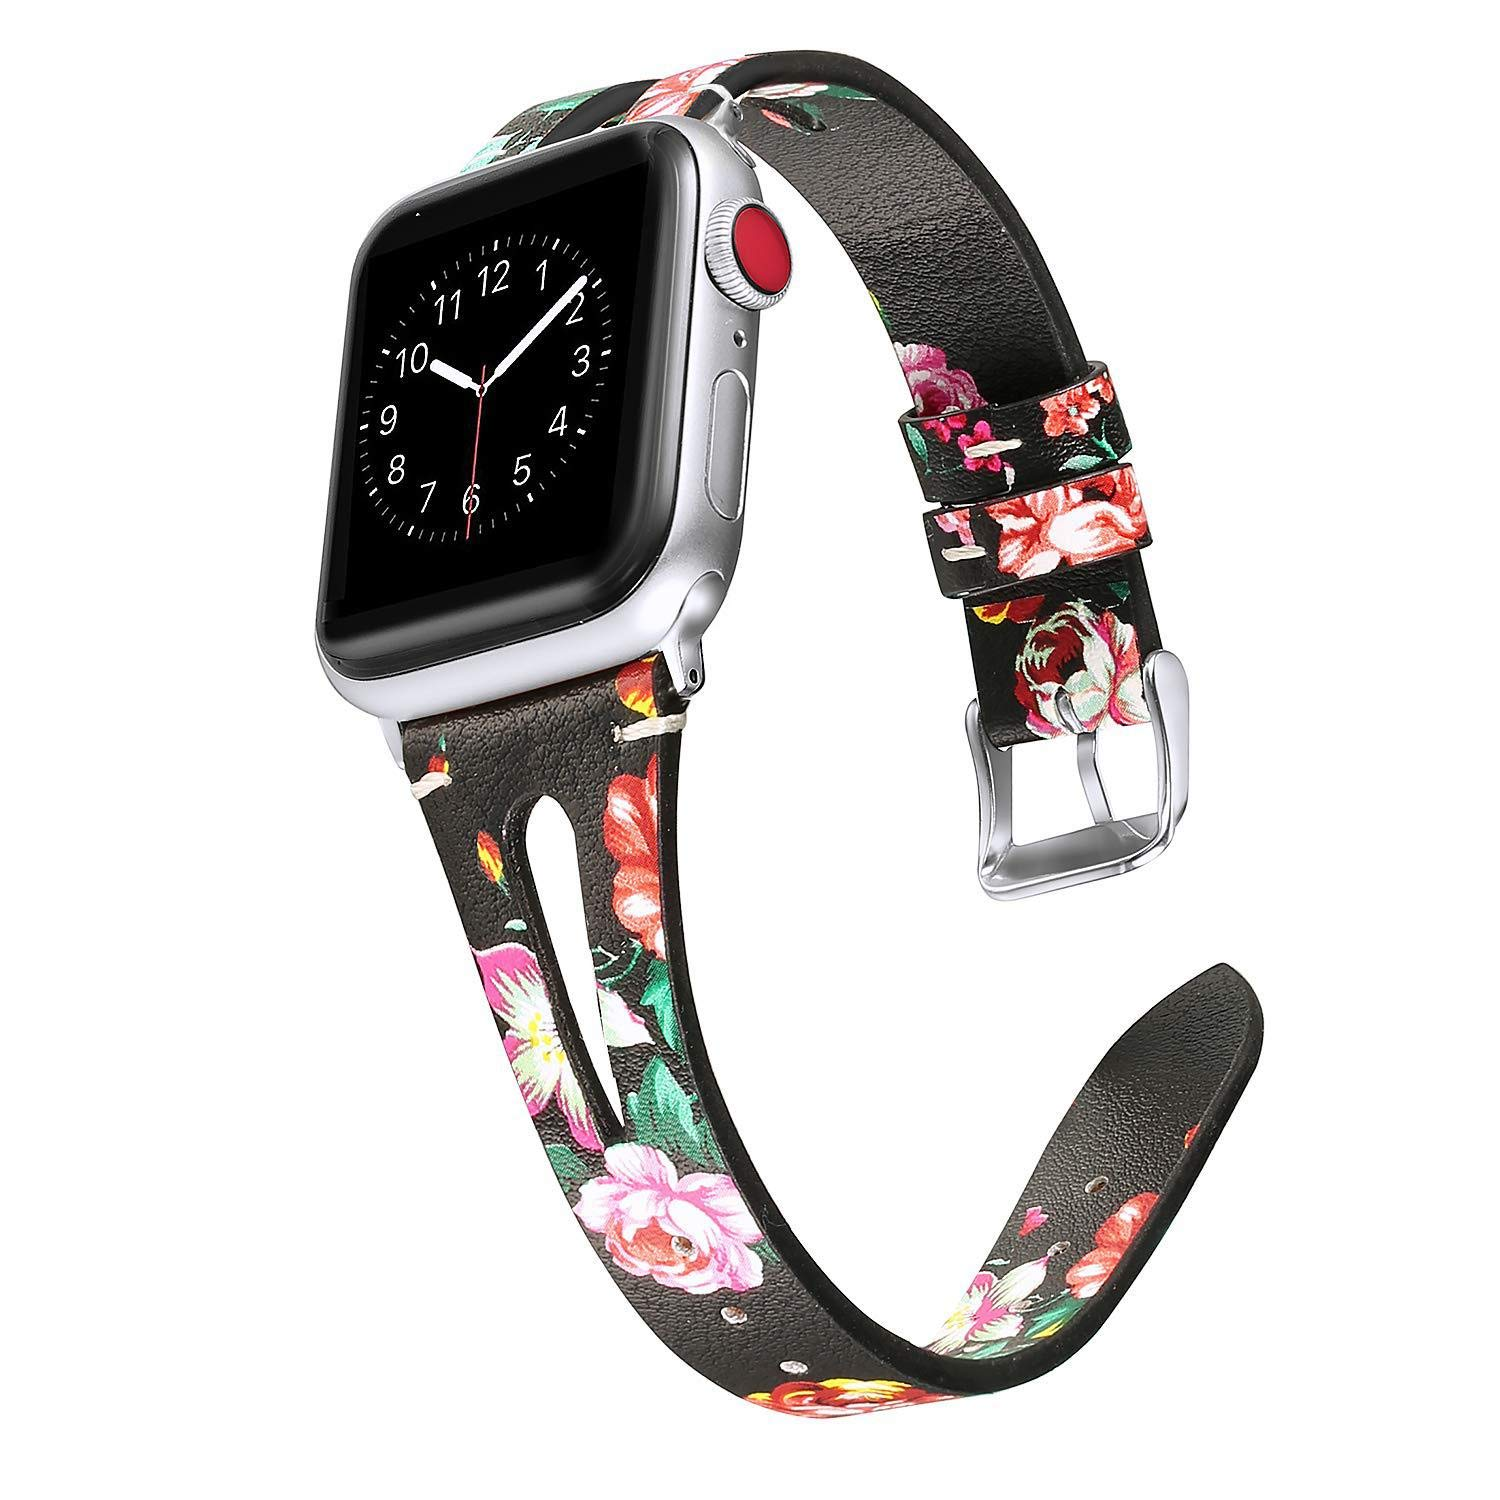 New for Apple Watch Band 38mm 38 for 3 4 Bands 4s S2 for Apple Watch Band 40mm for Apple Watch 40mm Band Watch Holder for Women 44 44mm for Apple Watch Band I for Apple Watch (Red Floral, 38mm40mm)